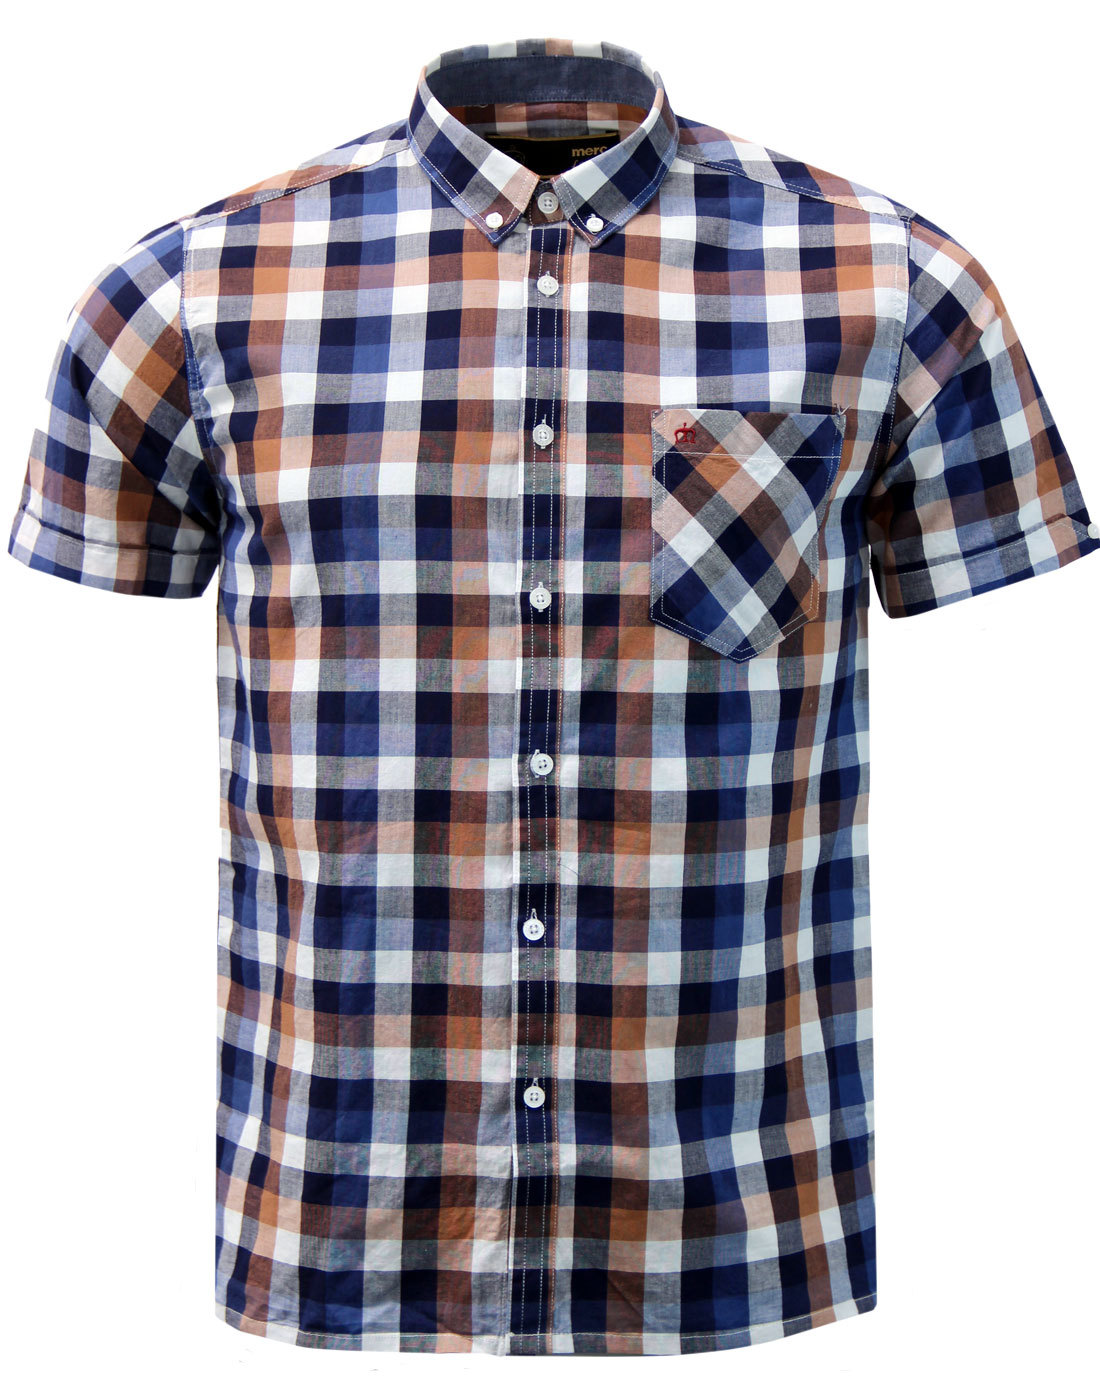 Ashford MERC Mod Block Check Button Down Shirt